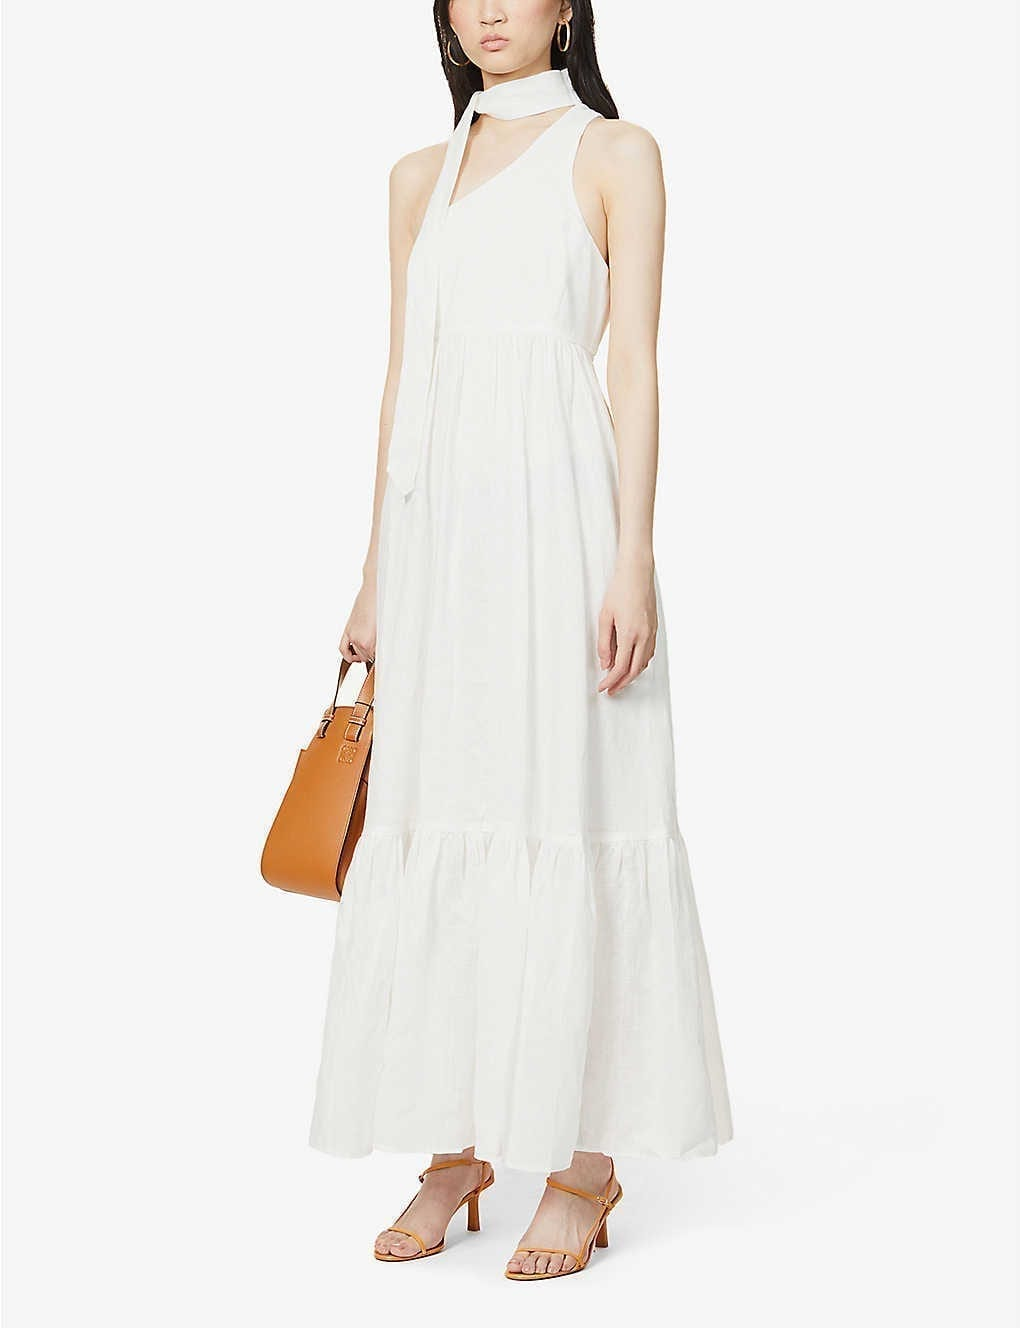 ZIMMERMANN Juliette Asymmetric Linen Maxi Dress